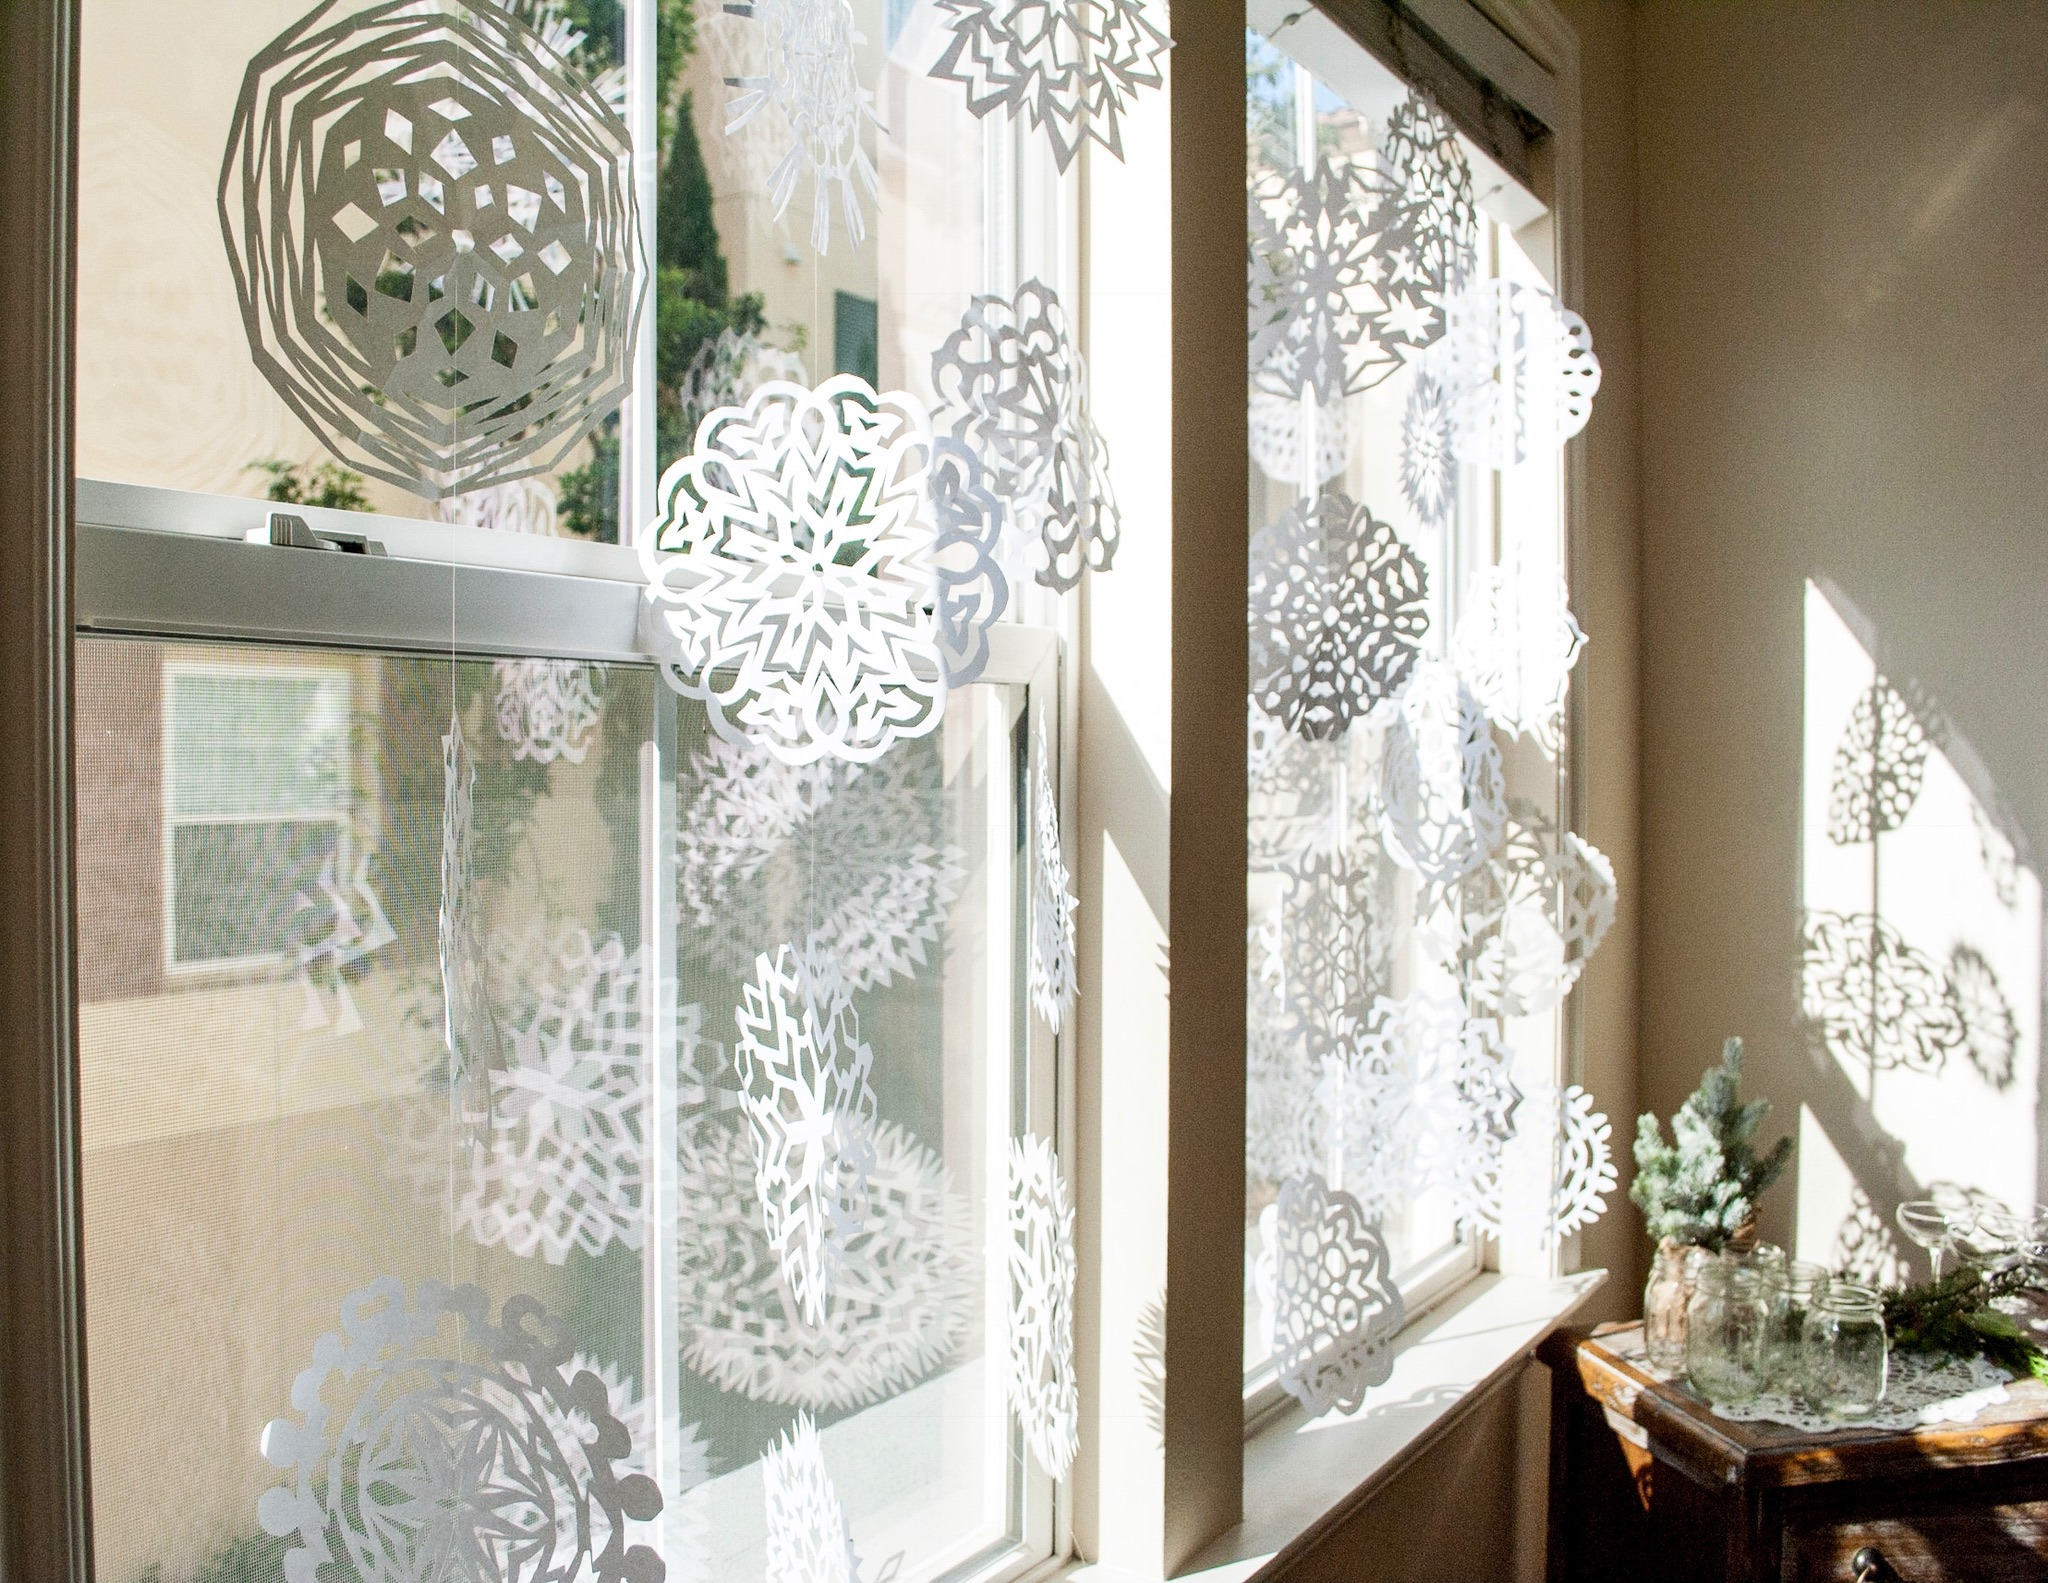 Paper snowflakes in the windows